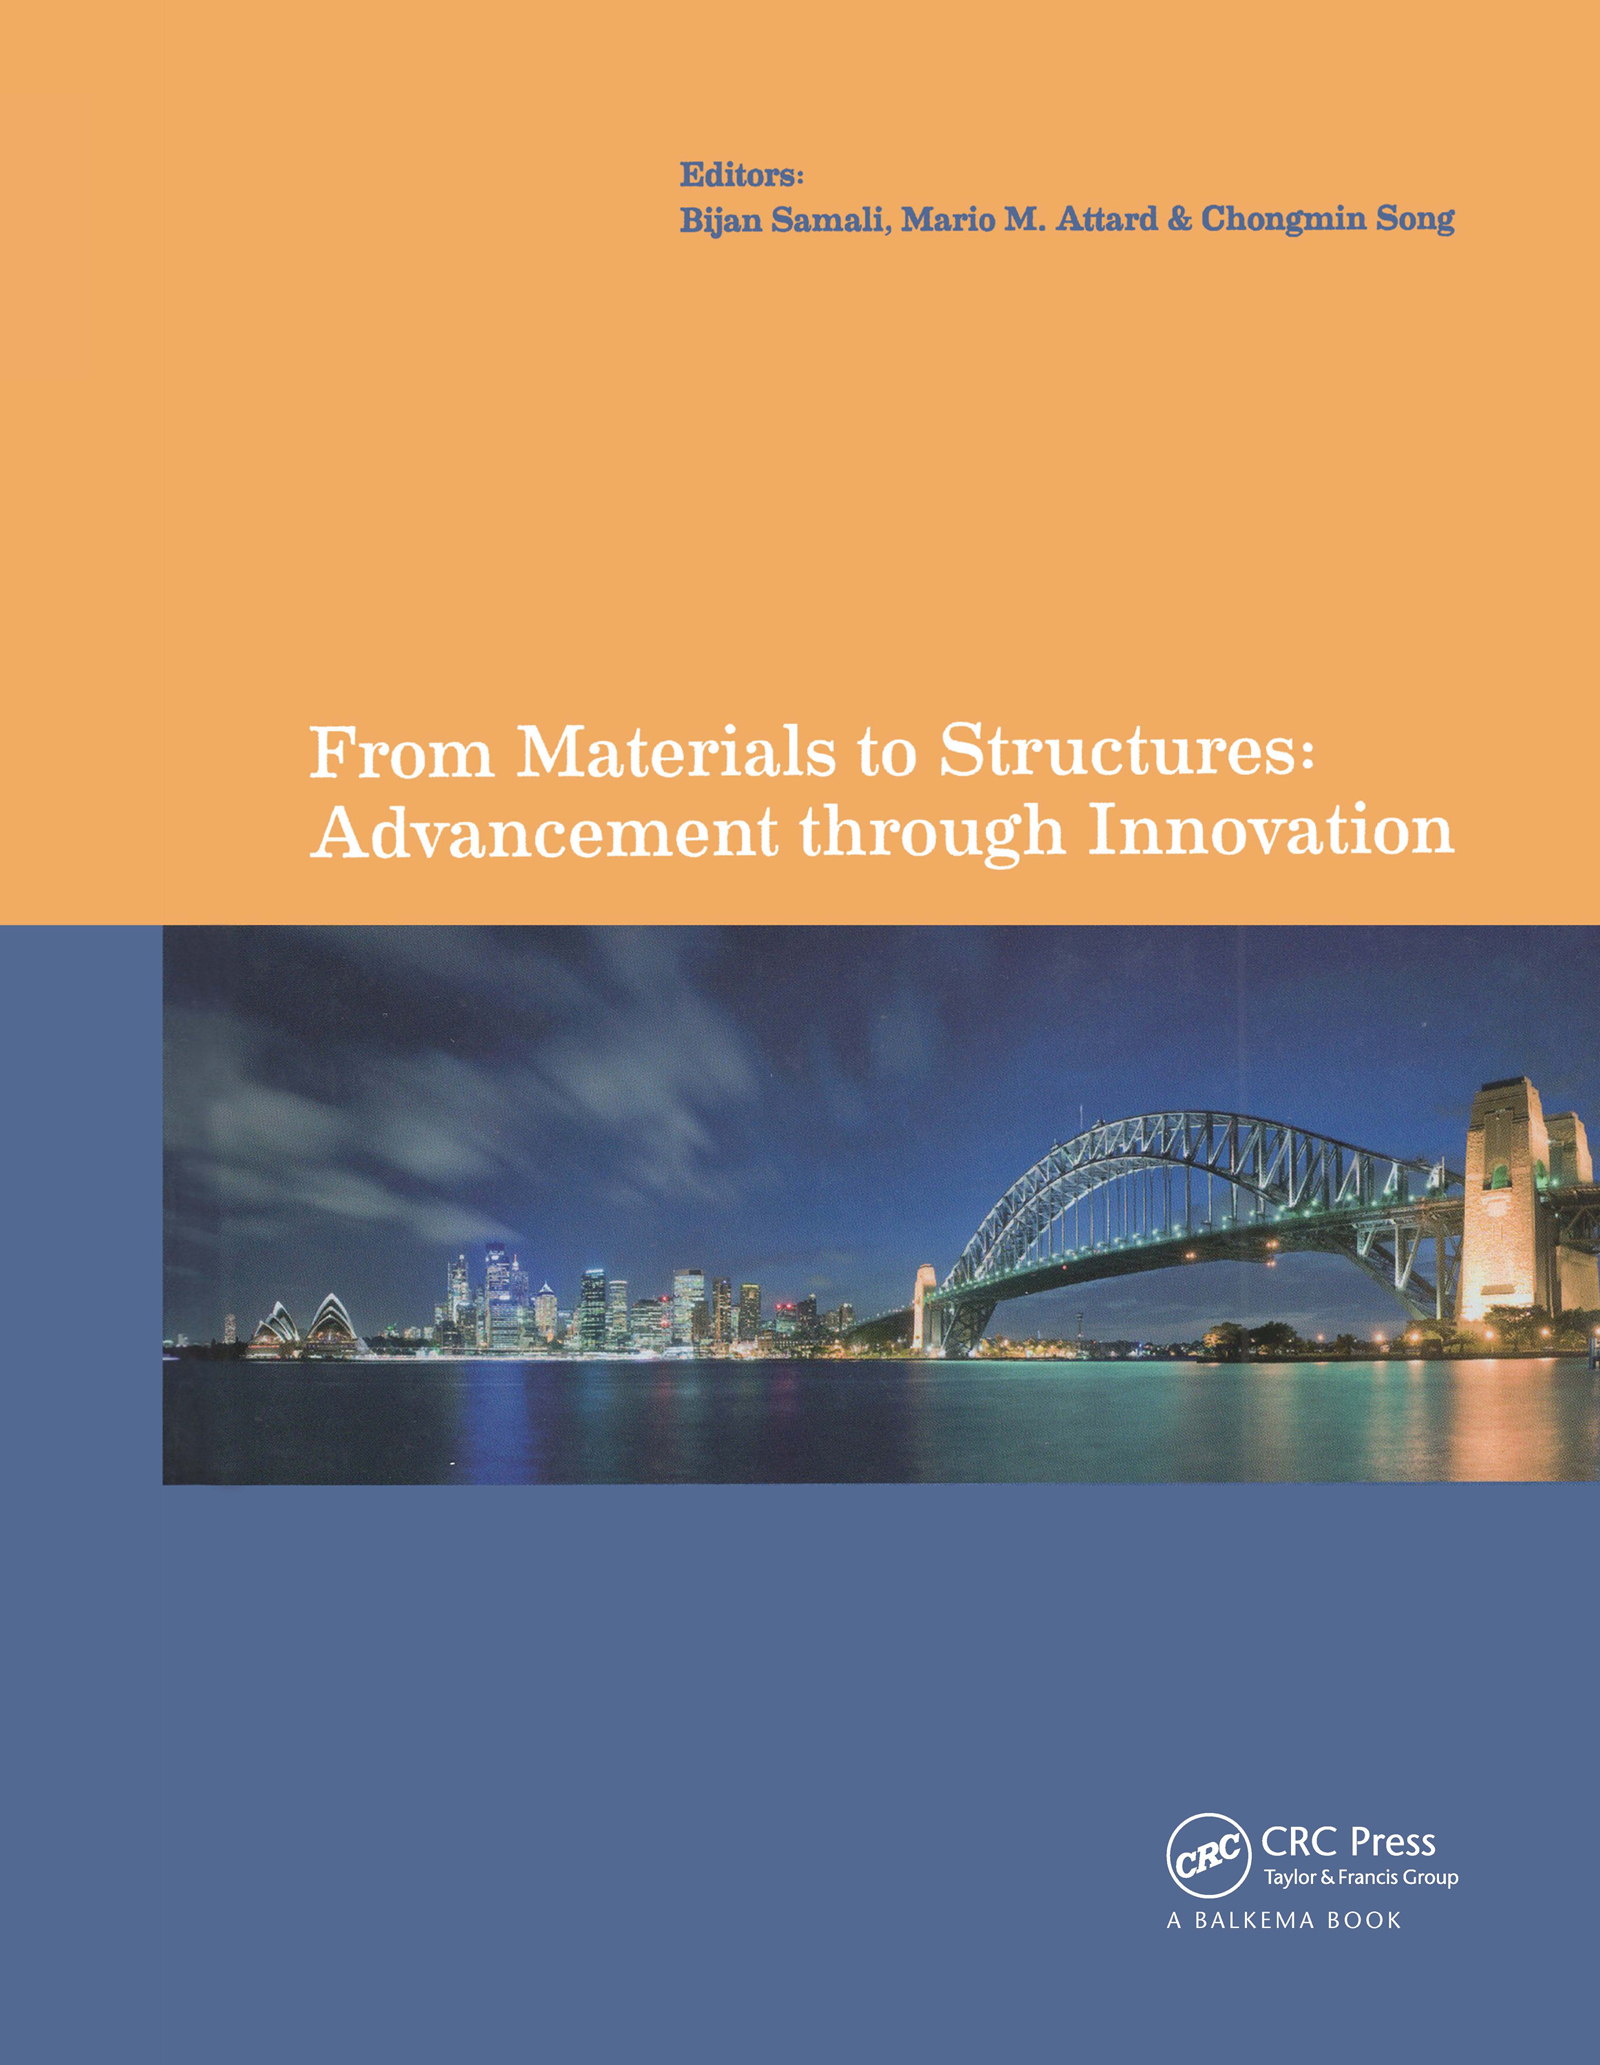 From Materials to Structures: Advancement through Innovation (Pack - Book and CD) book cover